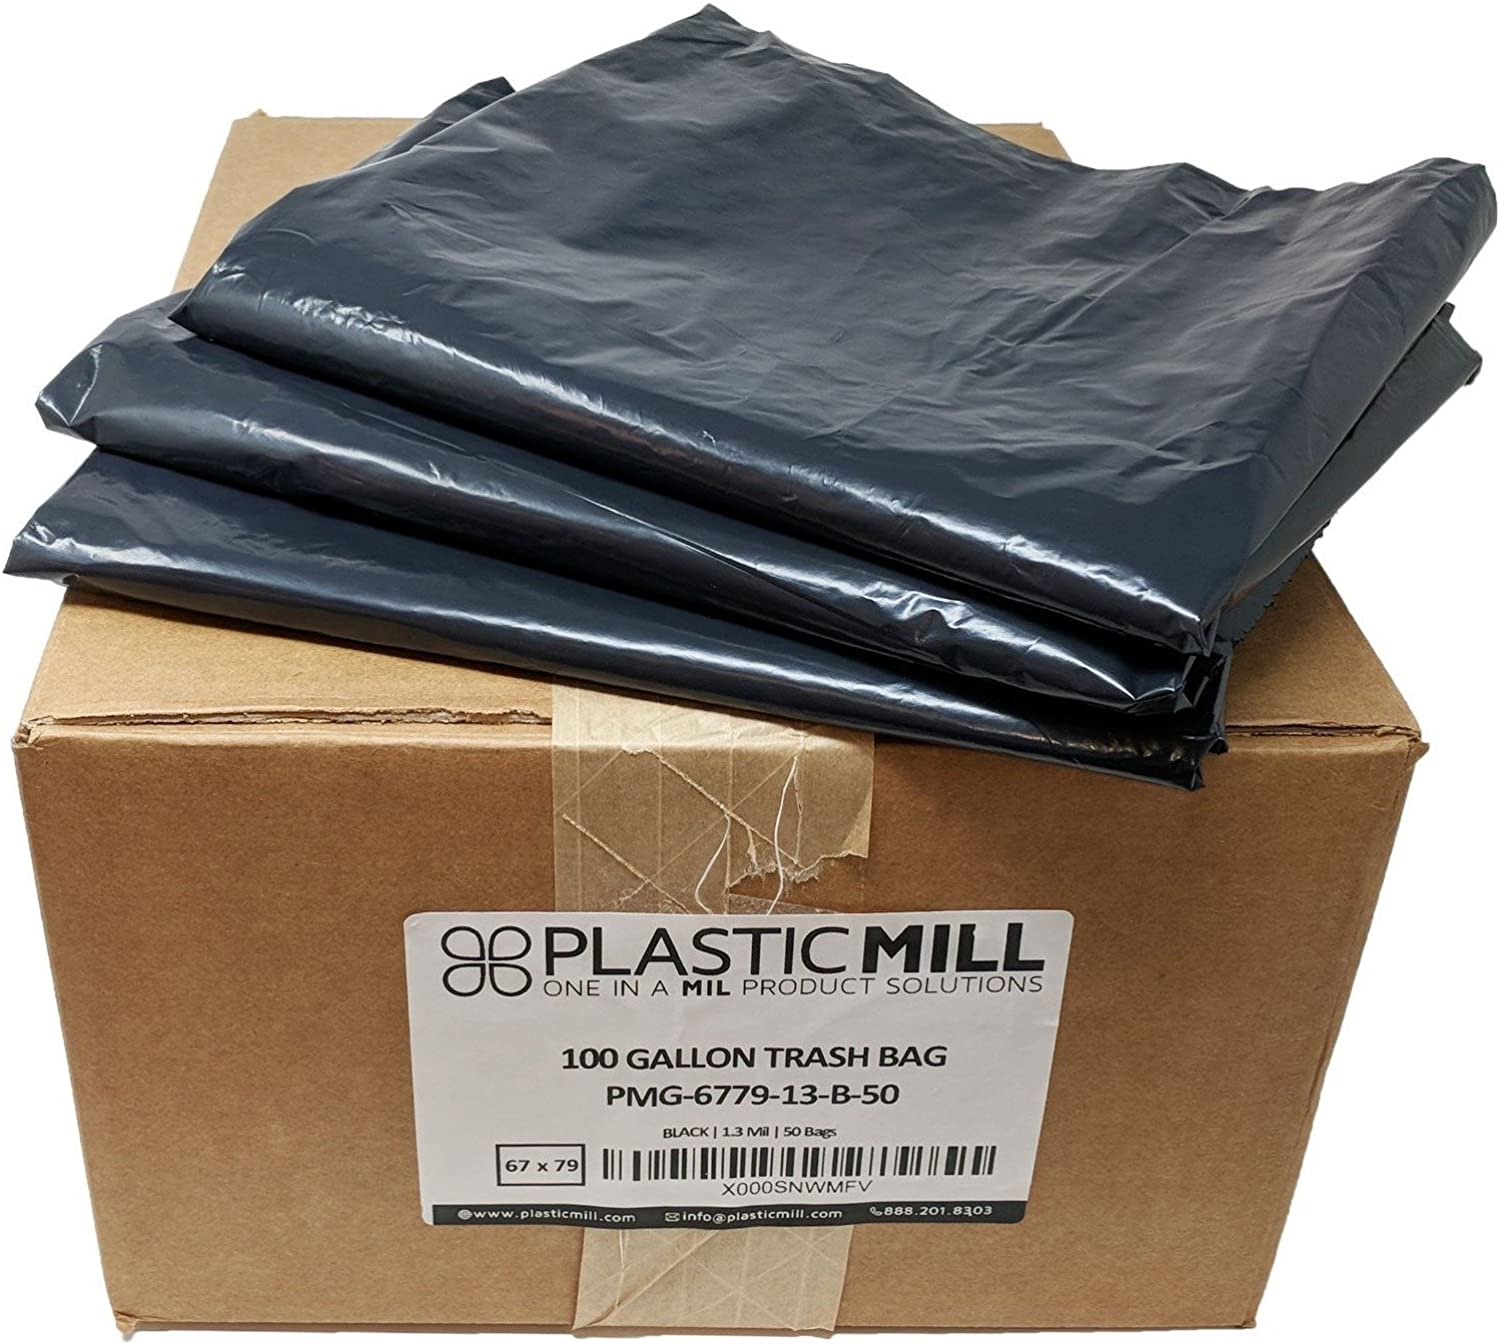 PlasticMill 100 Gallon, Black, 1.3 Mil, 67x79, 50 Bags Case, Gang Folded, Garbage Bags Trash Can Liners.